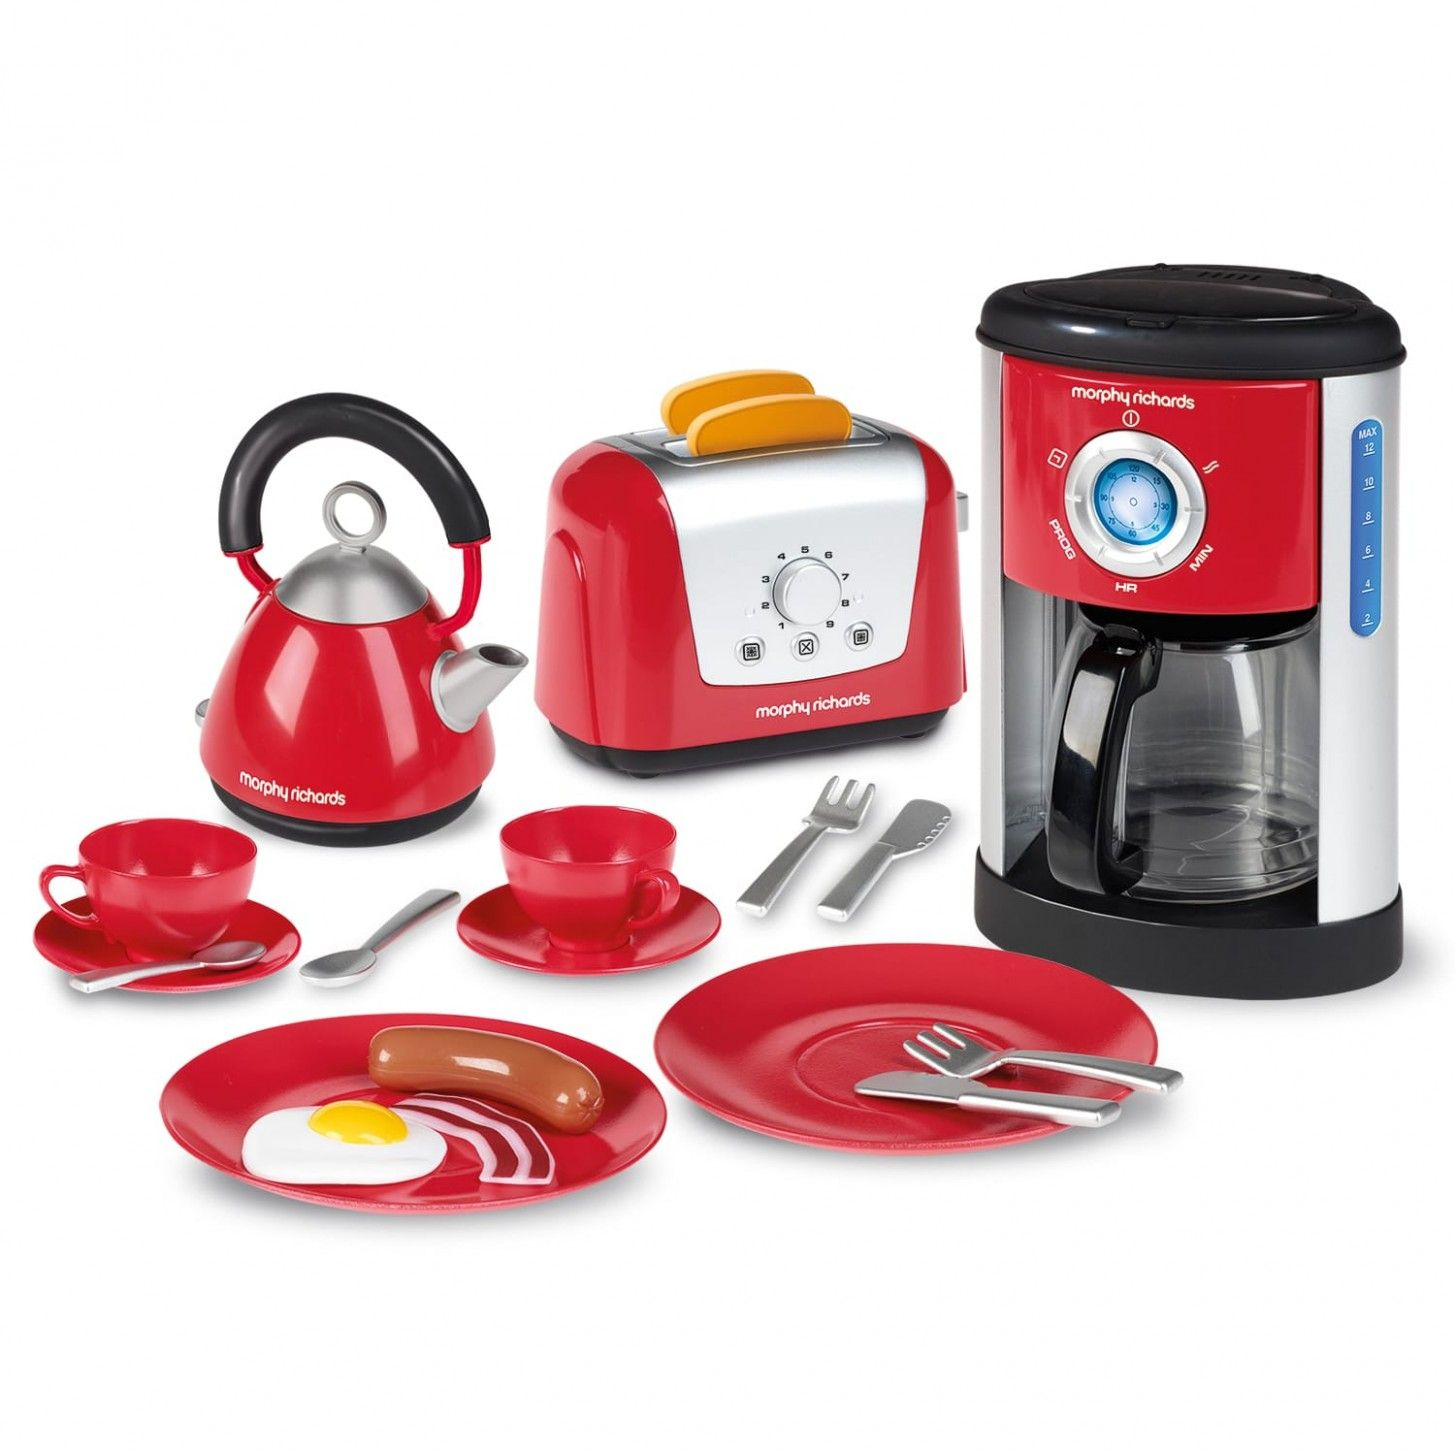 Kitchen Sets Morphy Richards in 9  Toy kitchen set, Kitchen